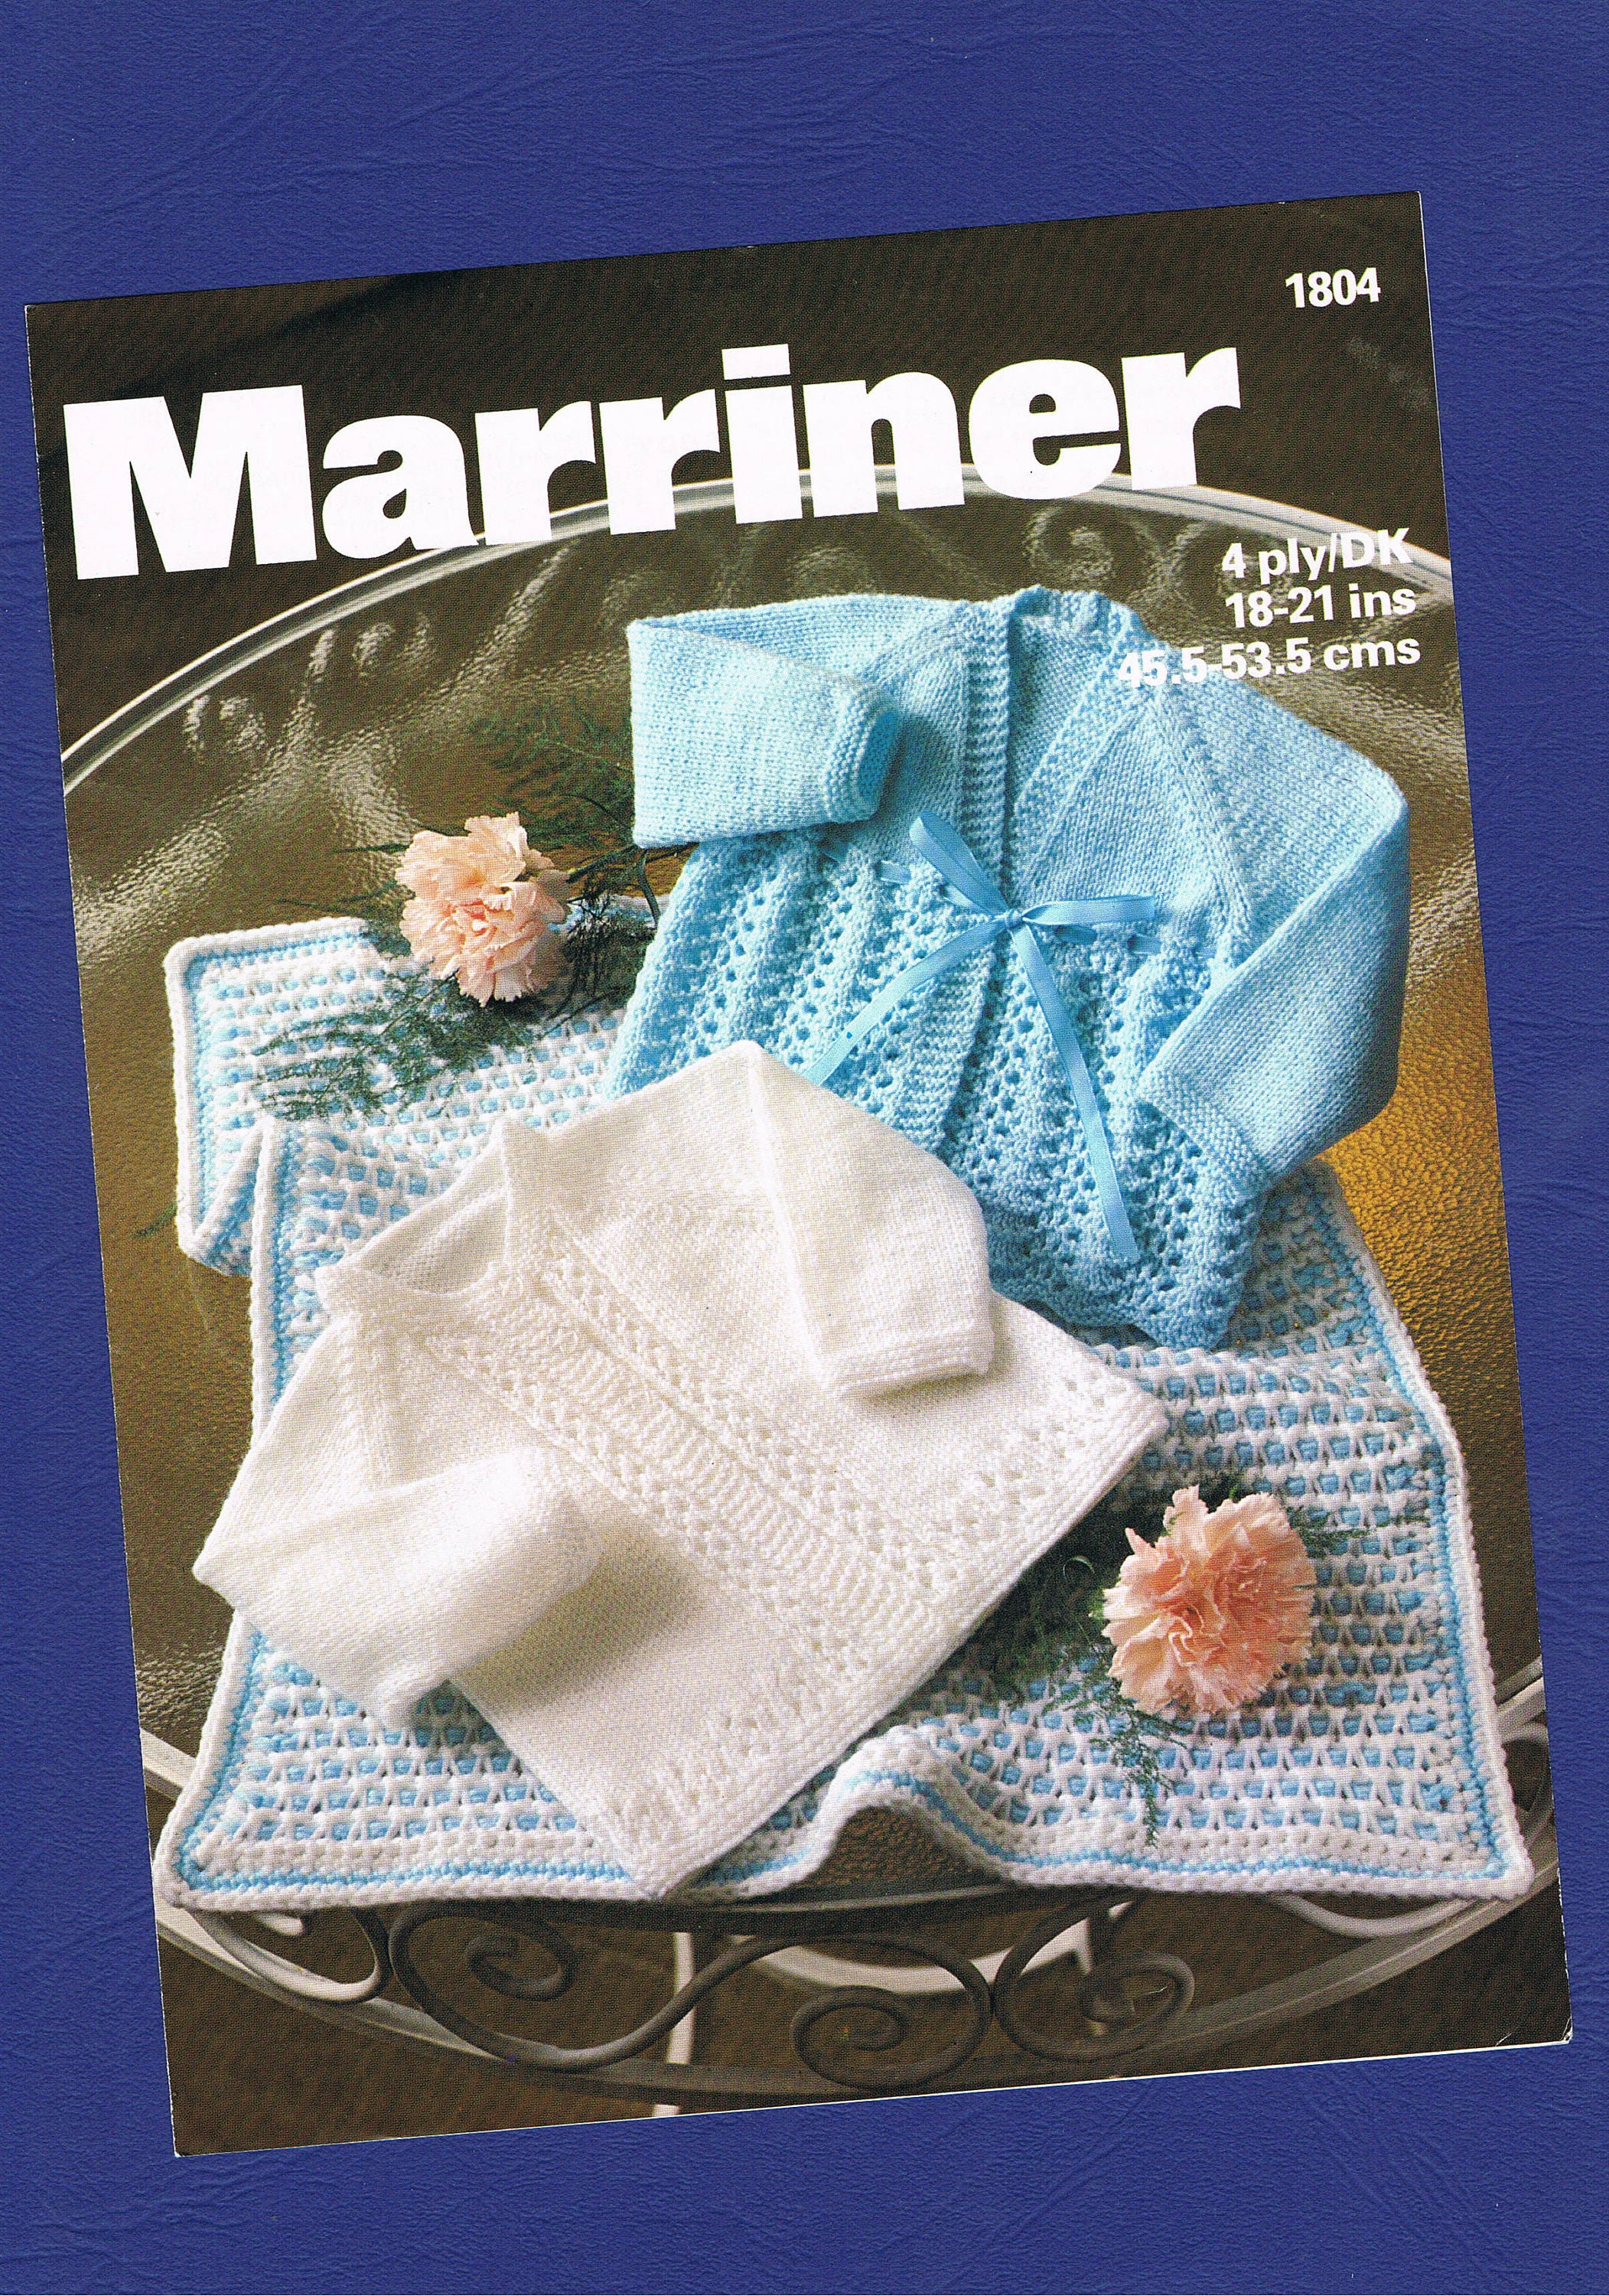 3844a5f5a Original Vintage Marriner Baby Clothes Knitting Pattern 1804 ...